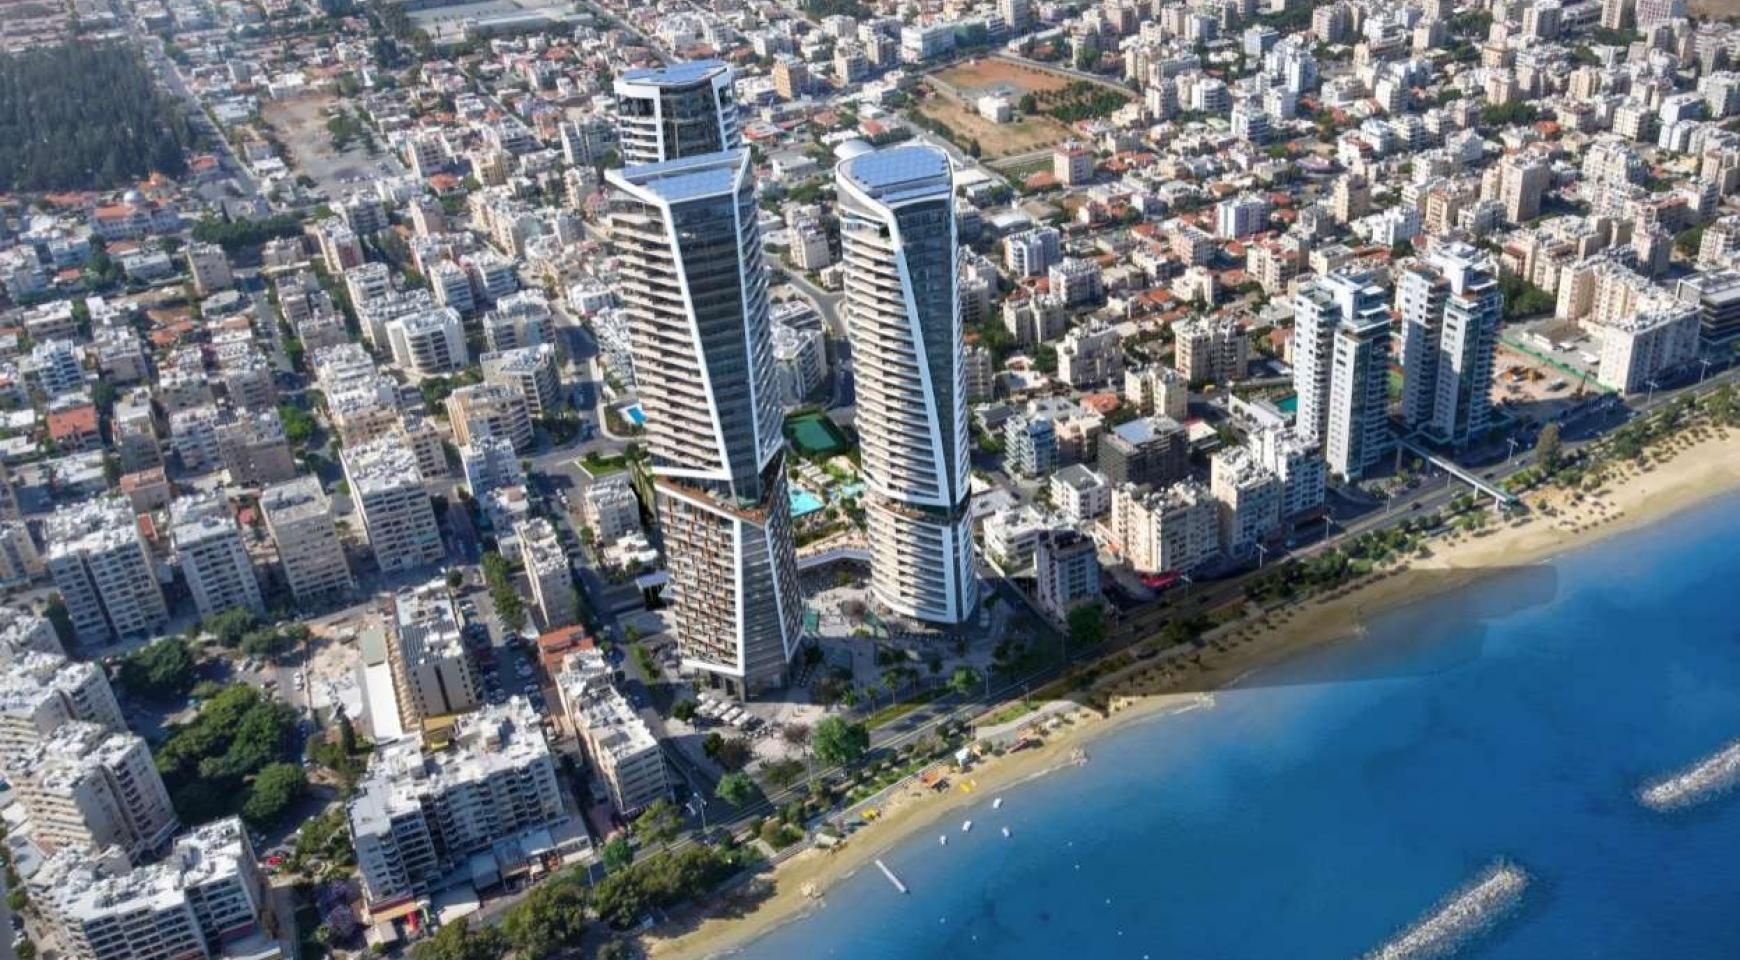 2 Bedroom Apartment in a New Project by the Sea in the City Centre - 4